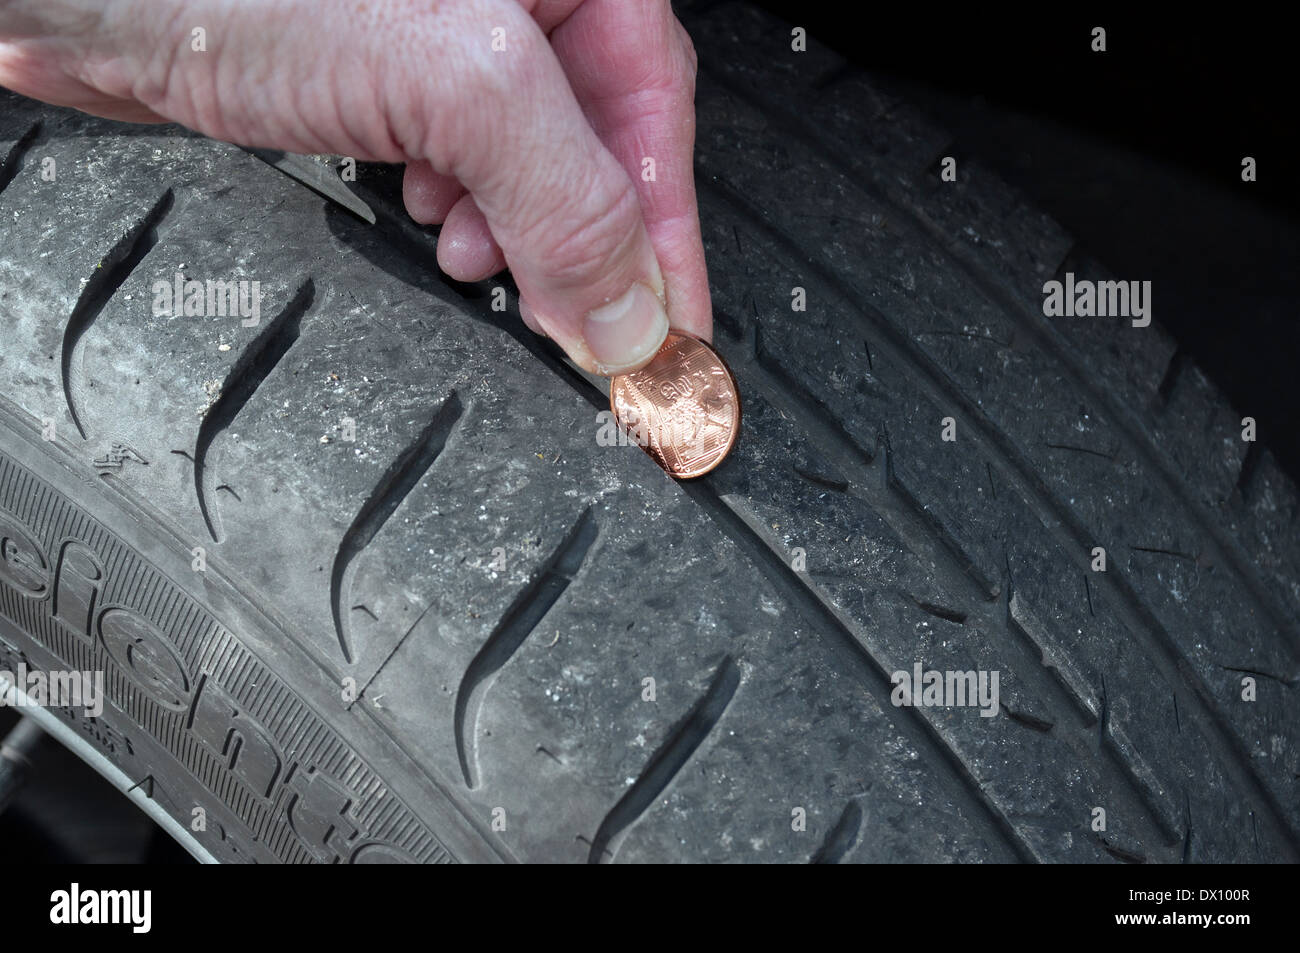 Stock photo checking the tread depth on car tyre using a coin